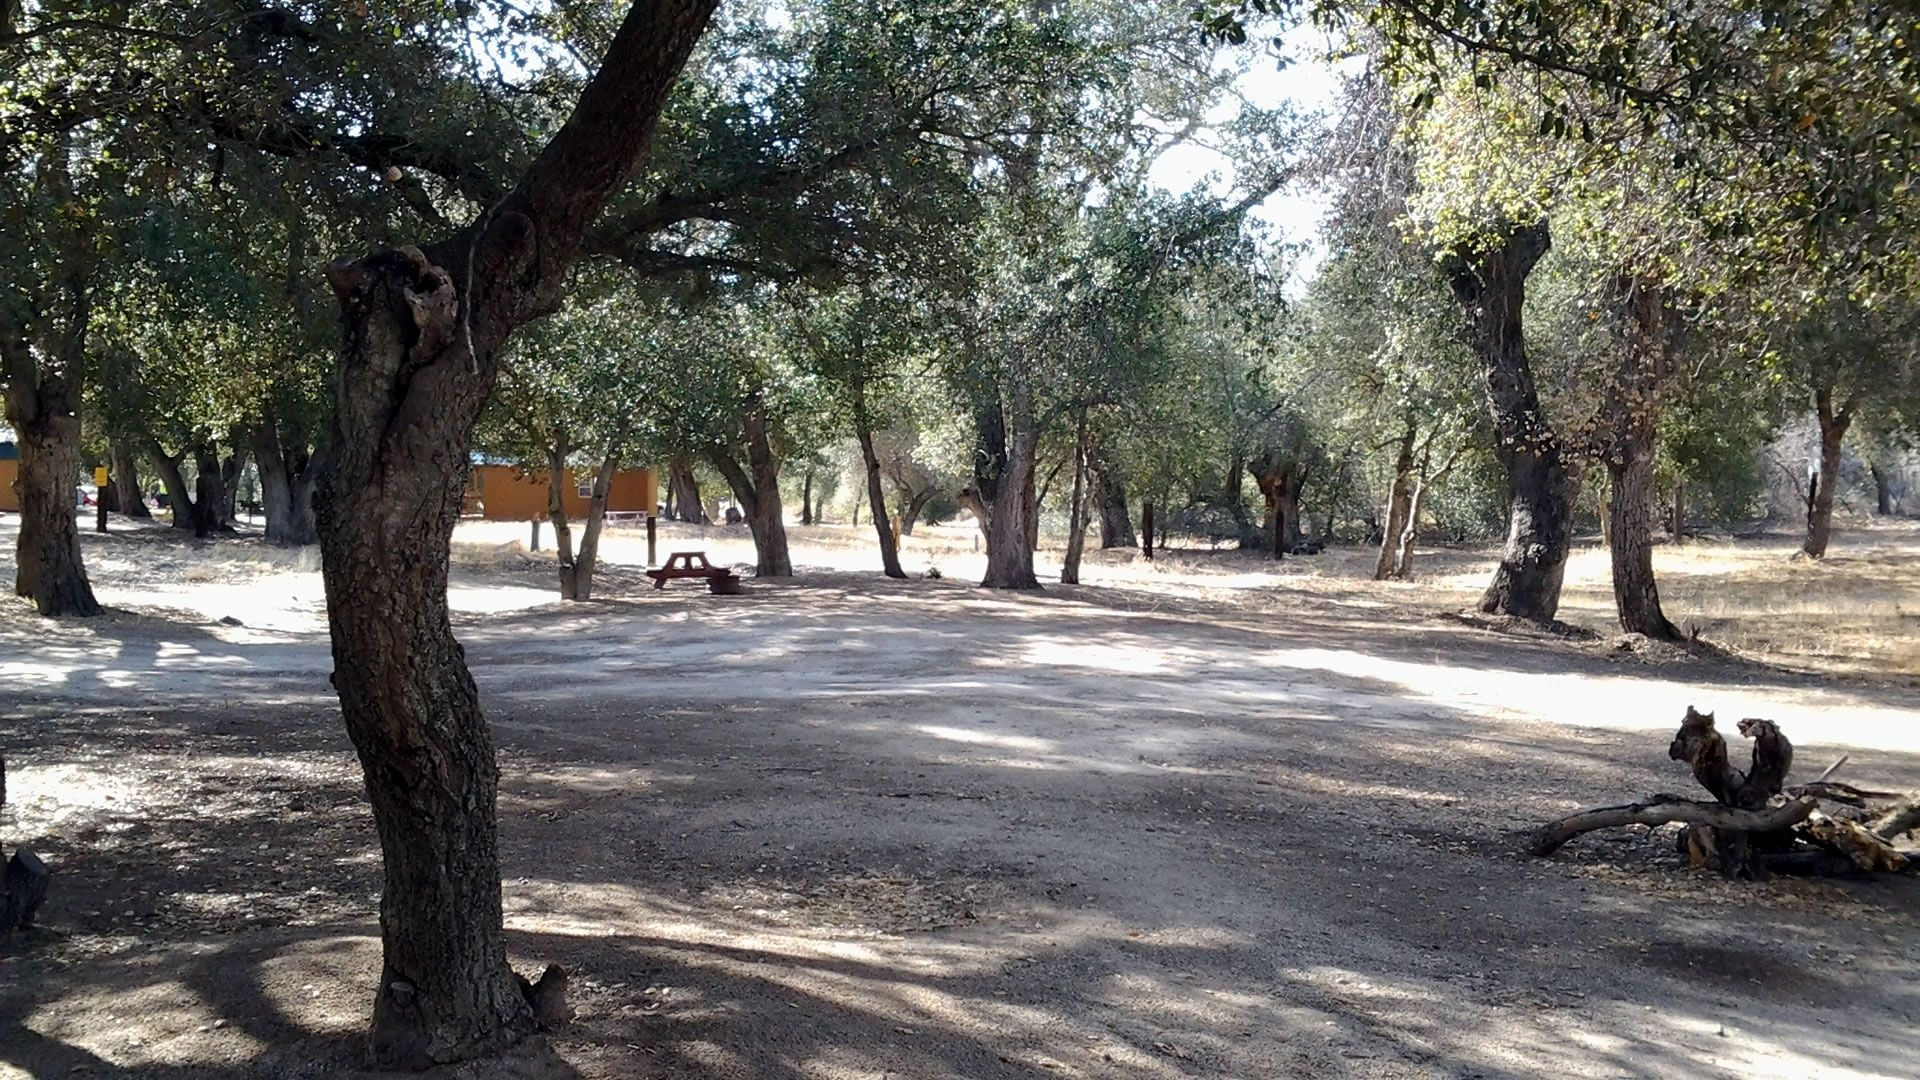 The Oaks At Sacred Rocks Rv Park And Campground Is The Perfect Place To Get Away To Relax With Your Fa Rv Parks And Campgrounds San Diego County Manzanita Tree